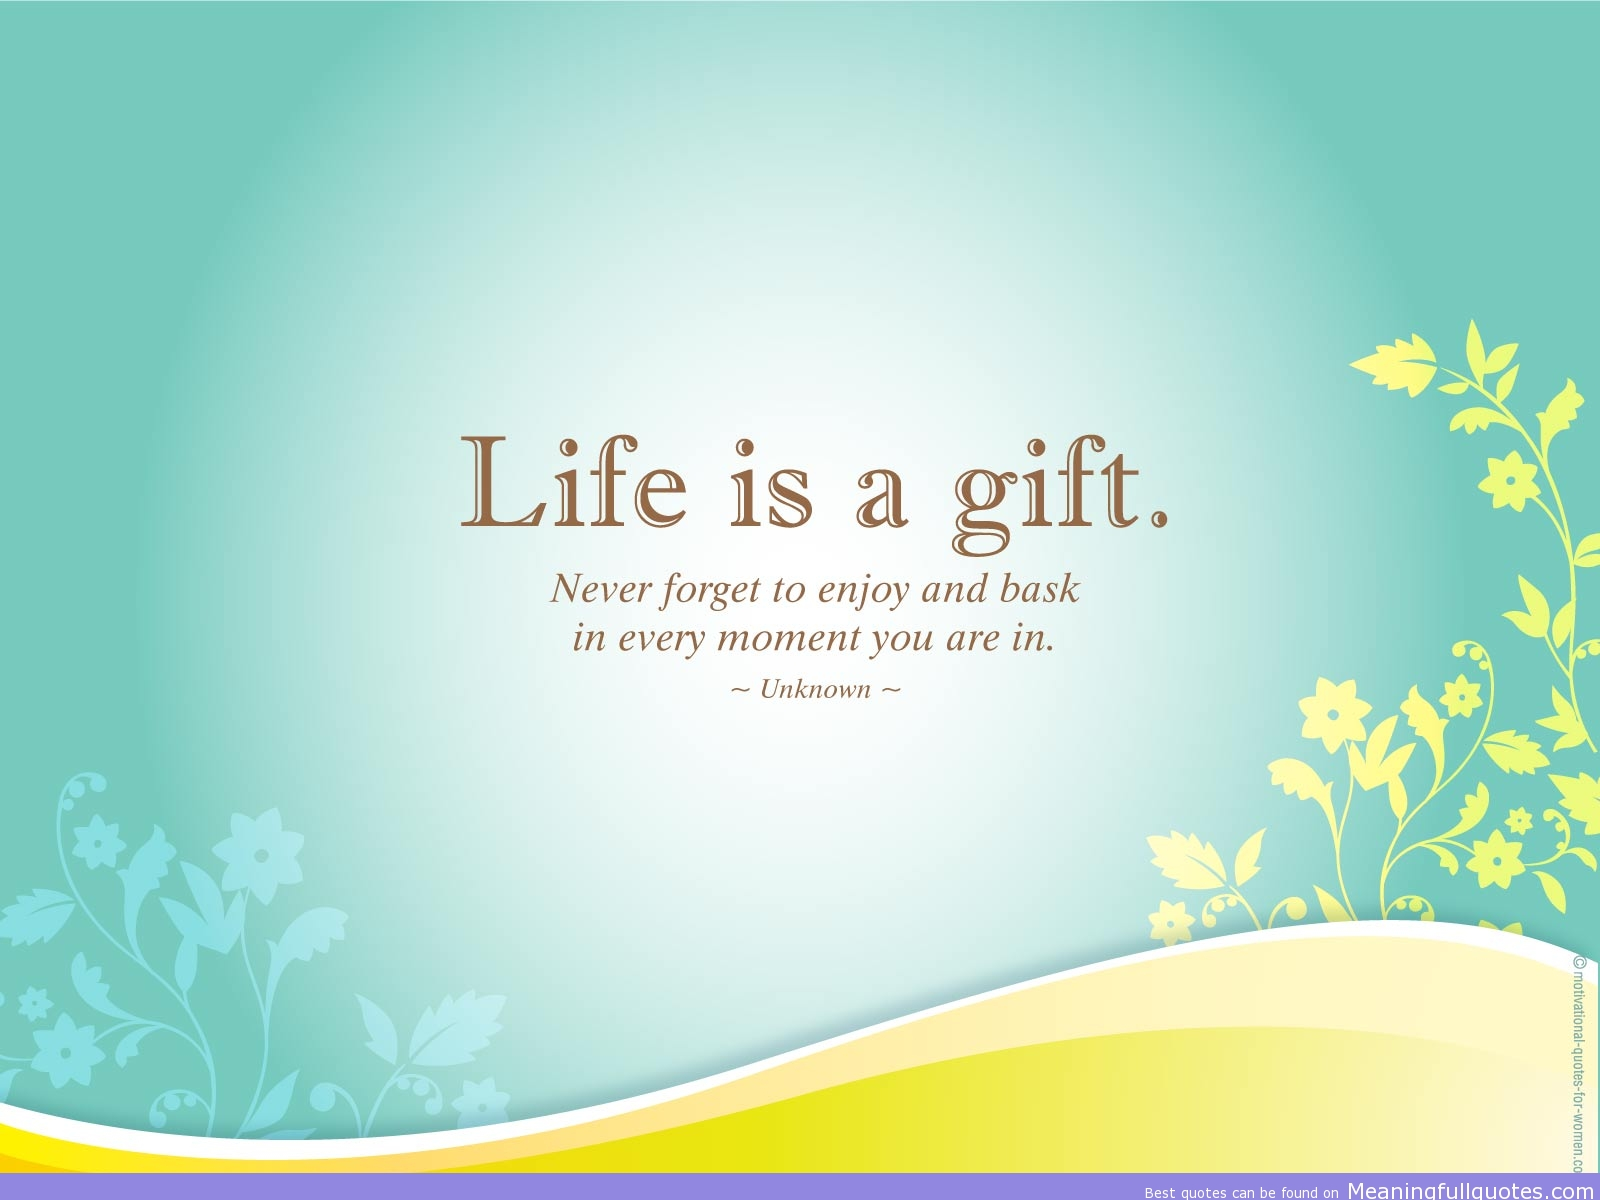 Life quote wallpapers pictures images life quote wallpaper thecheapjerseys Choice Image